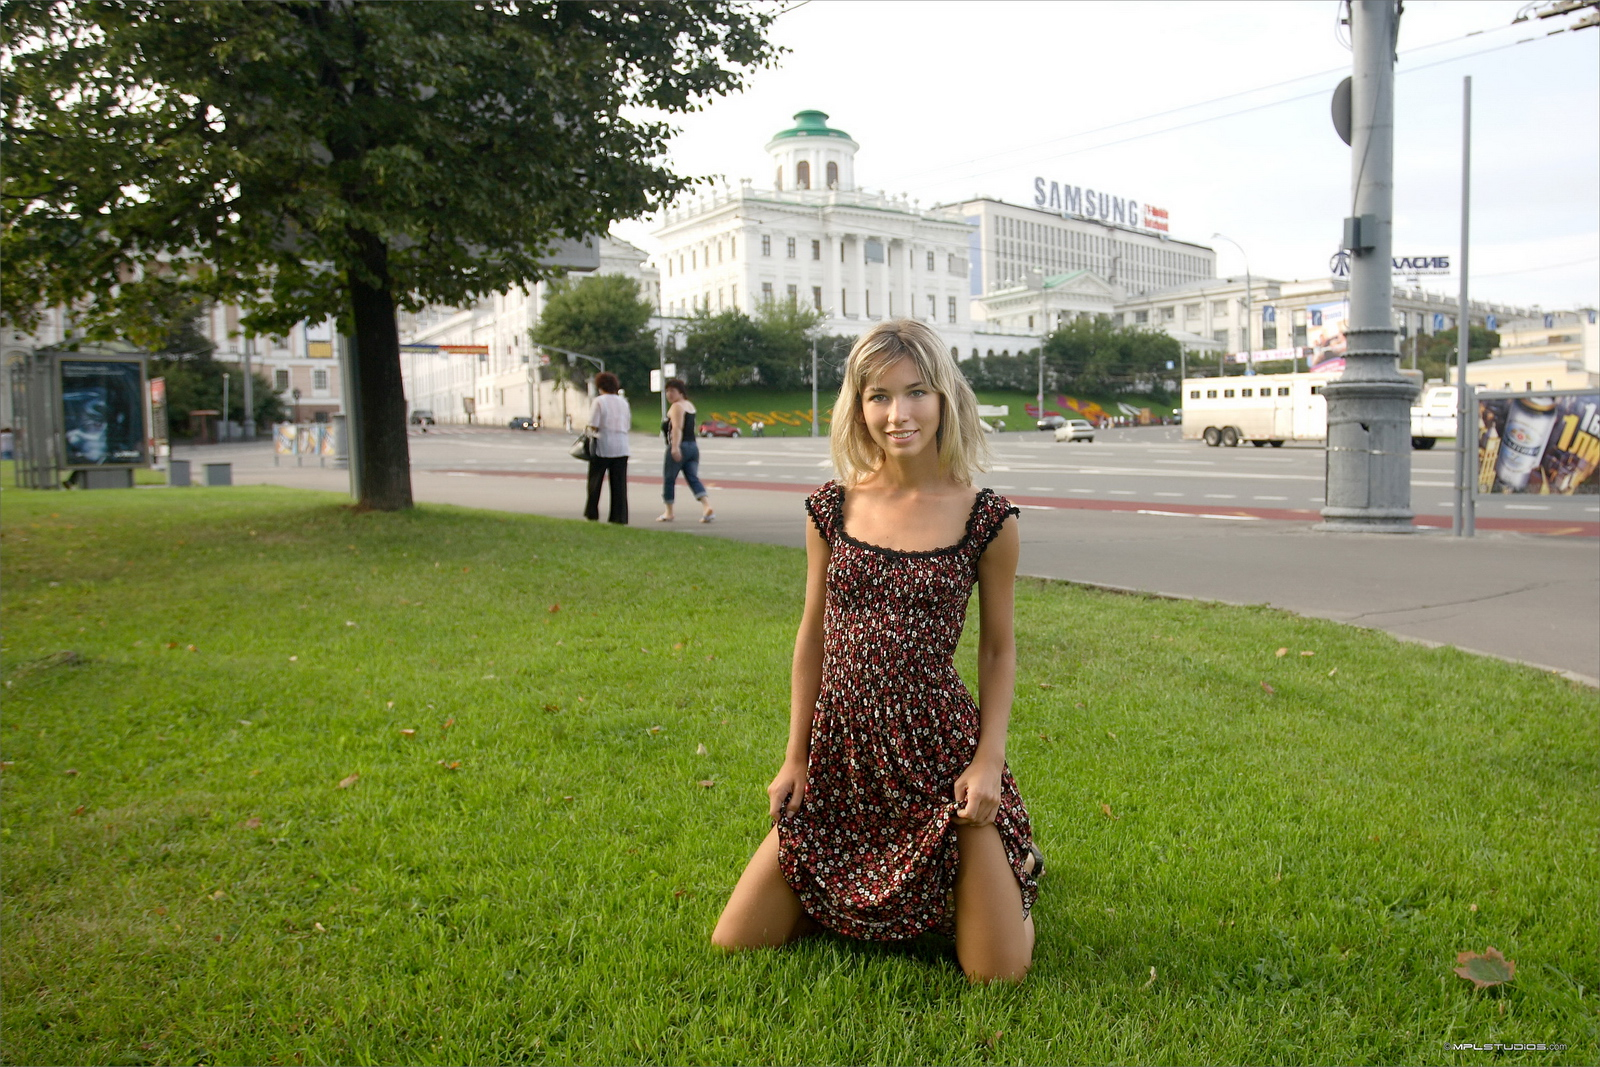 https://redbust.com/stuff/natalia-postcard-from-moscow/lia-flash-in-public-moscow-slim-girl-mplstudios-17.jpg